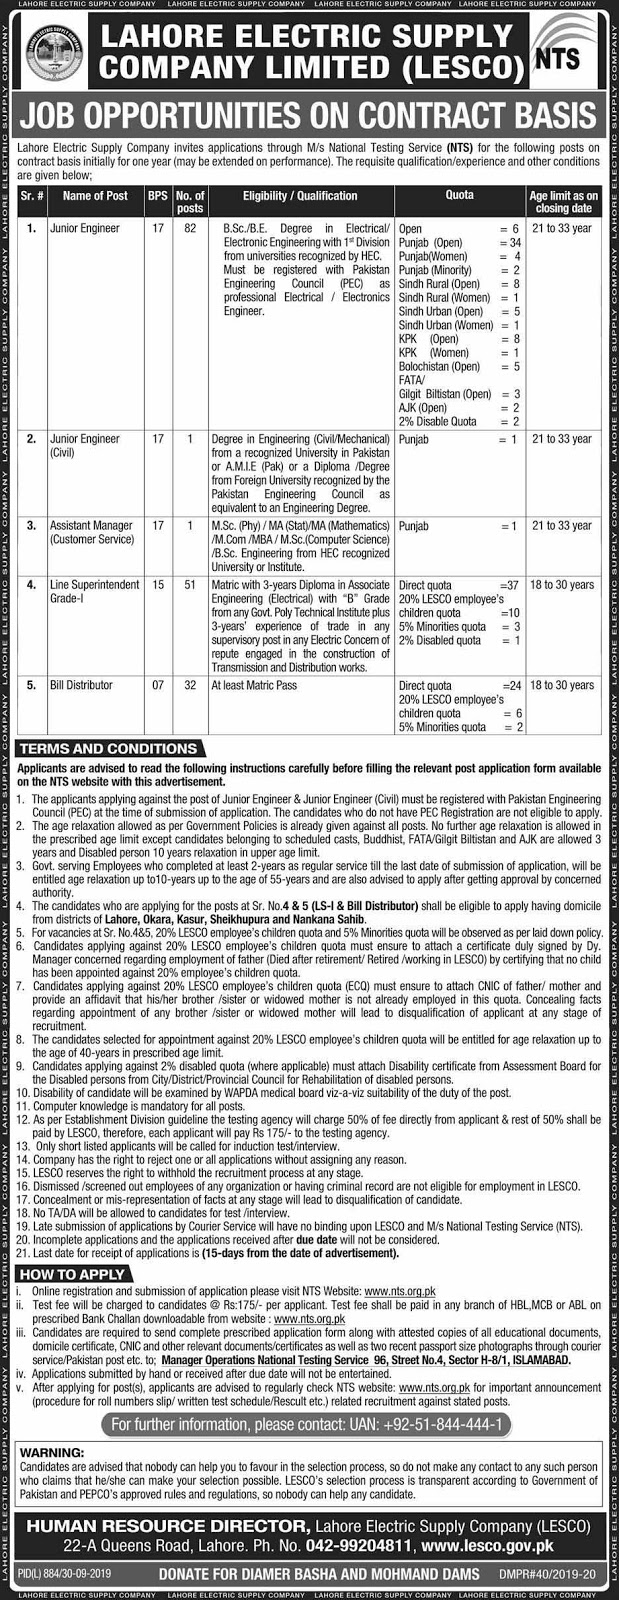 NTS Jobs in Lahore Electric Supply Company Limited (LESCO)